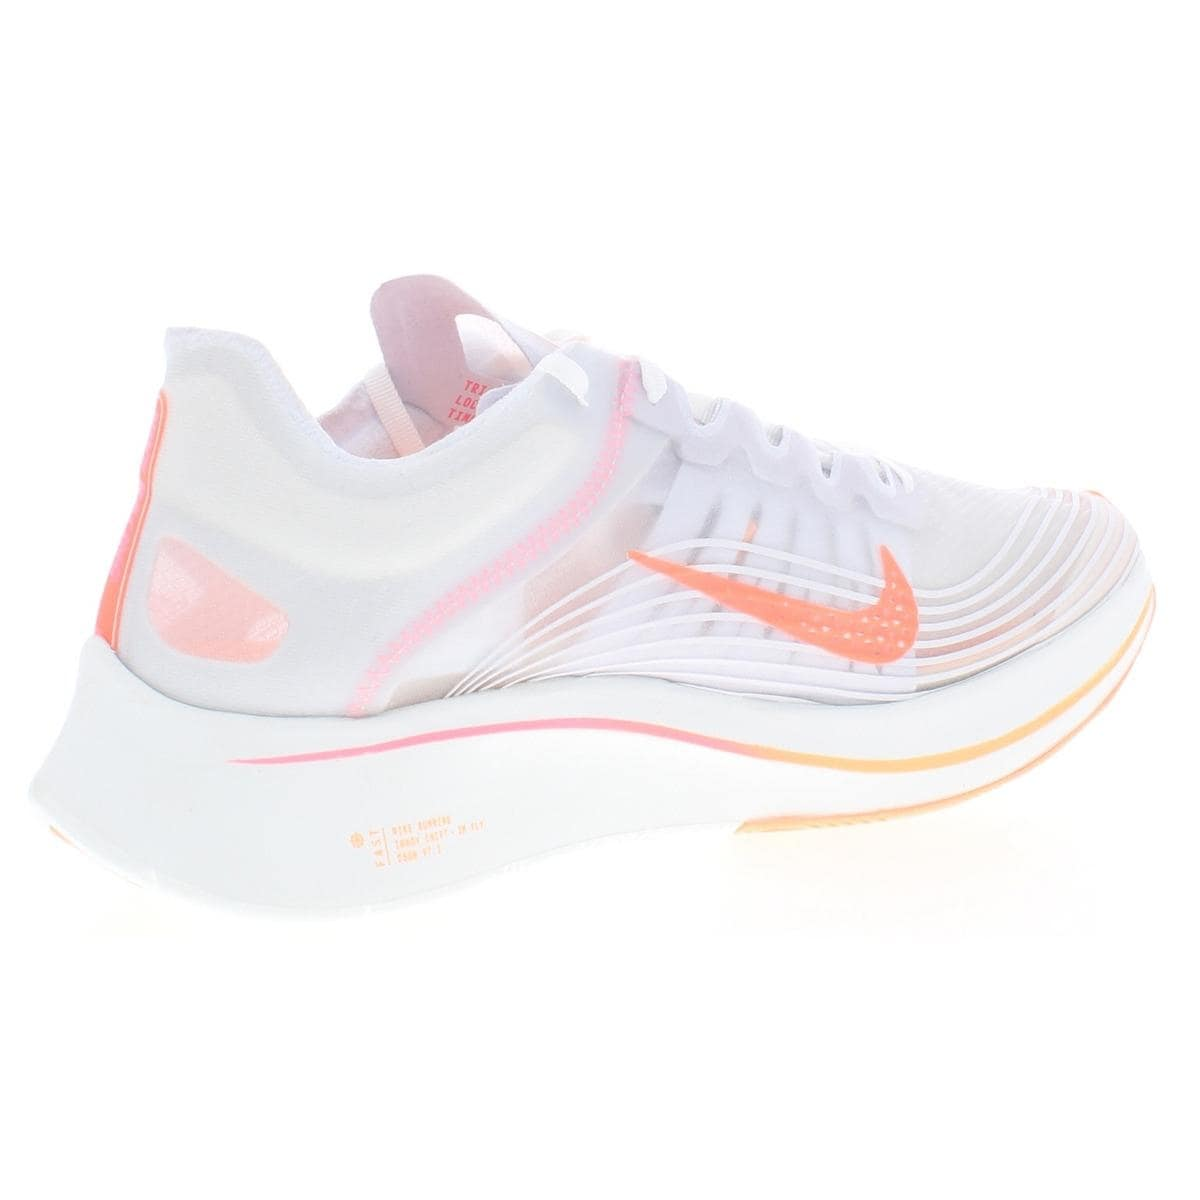 690f737a419a4 Nike Womens Zoom Fly SP Running, Cross Training Shoes Sport Workout